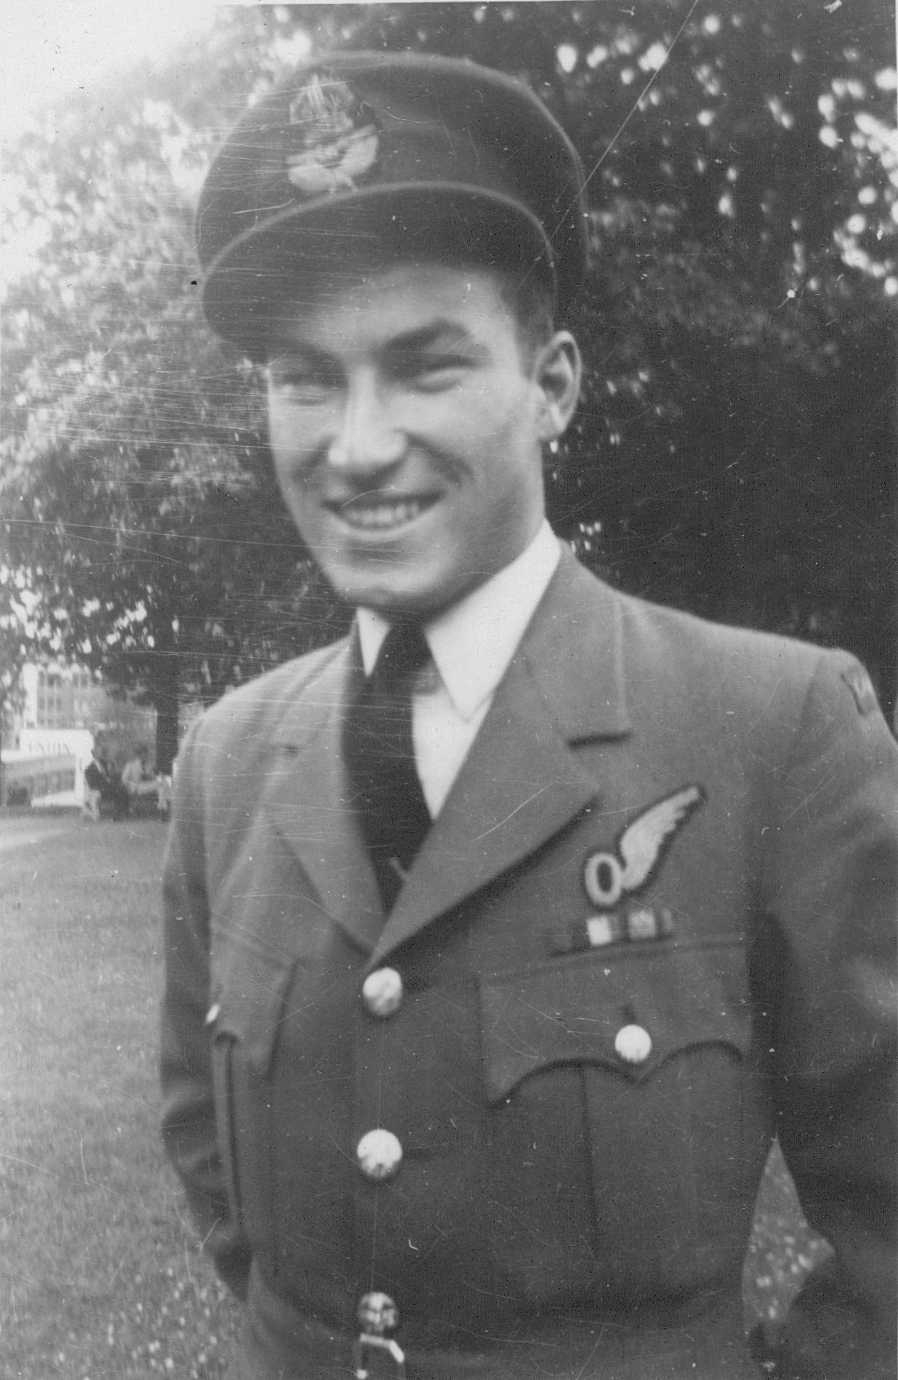 PHOTO 3 of Hubert Brooks After Completion of Training with RCAF